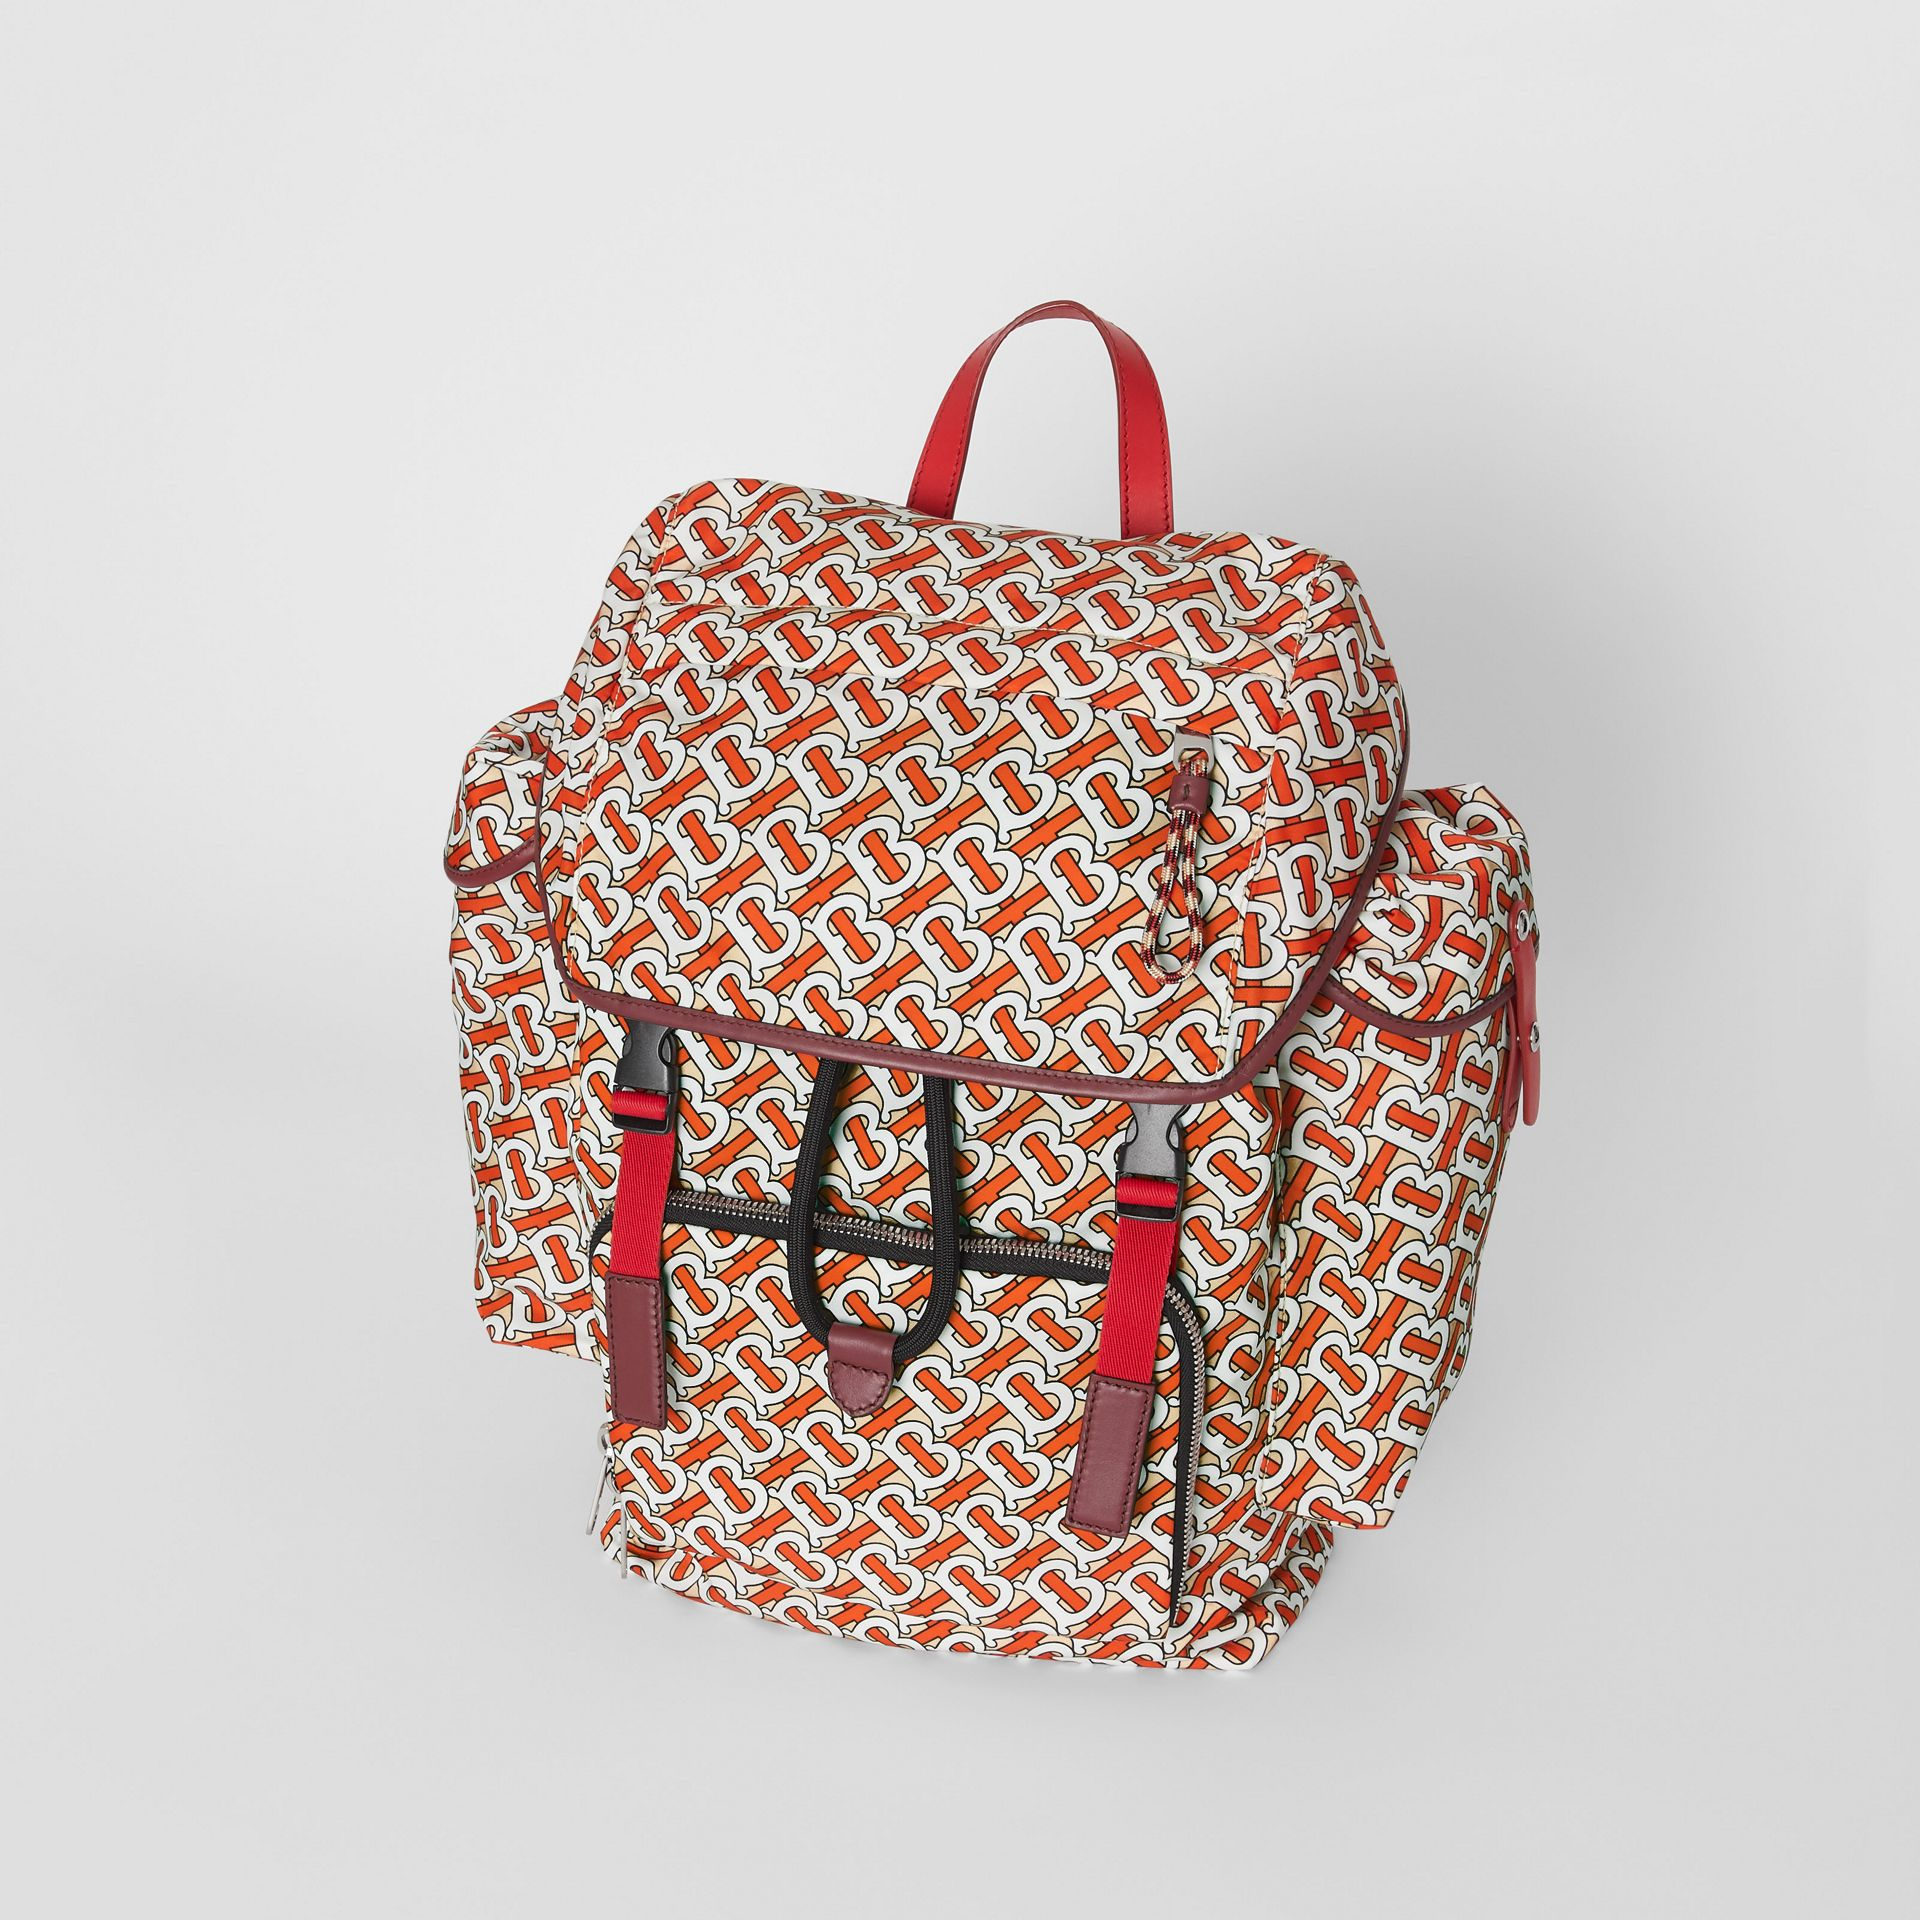 Medium Leather Trim Monogram Print Backpack in Vermilion - Men | Burberry Hong Kong - gallery image 3